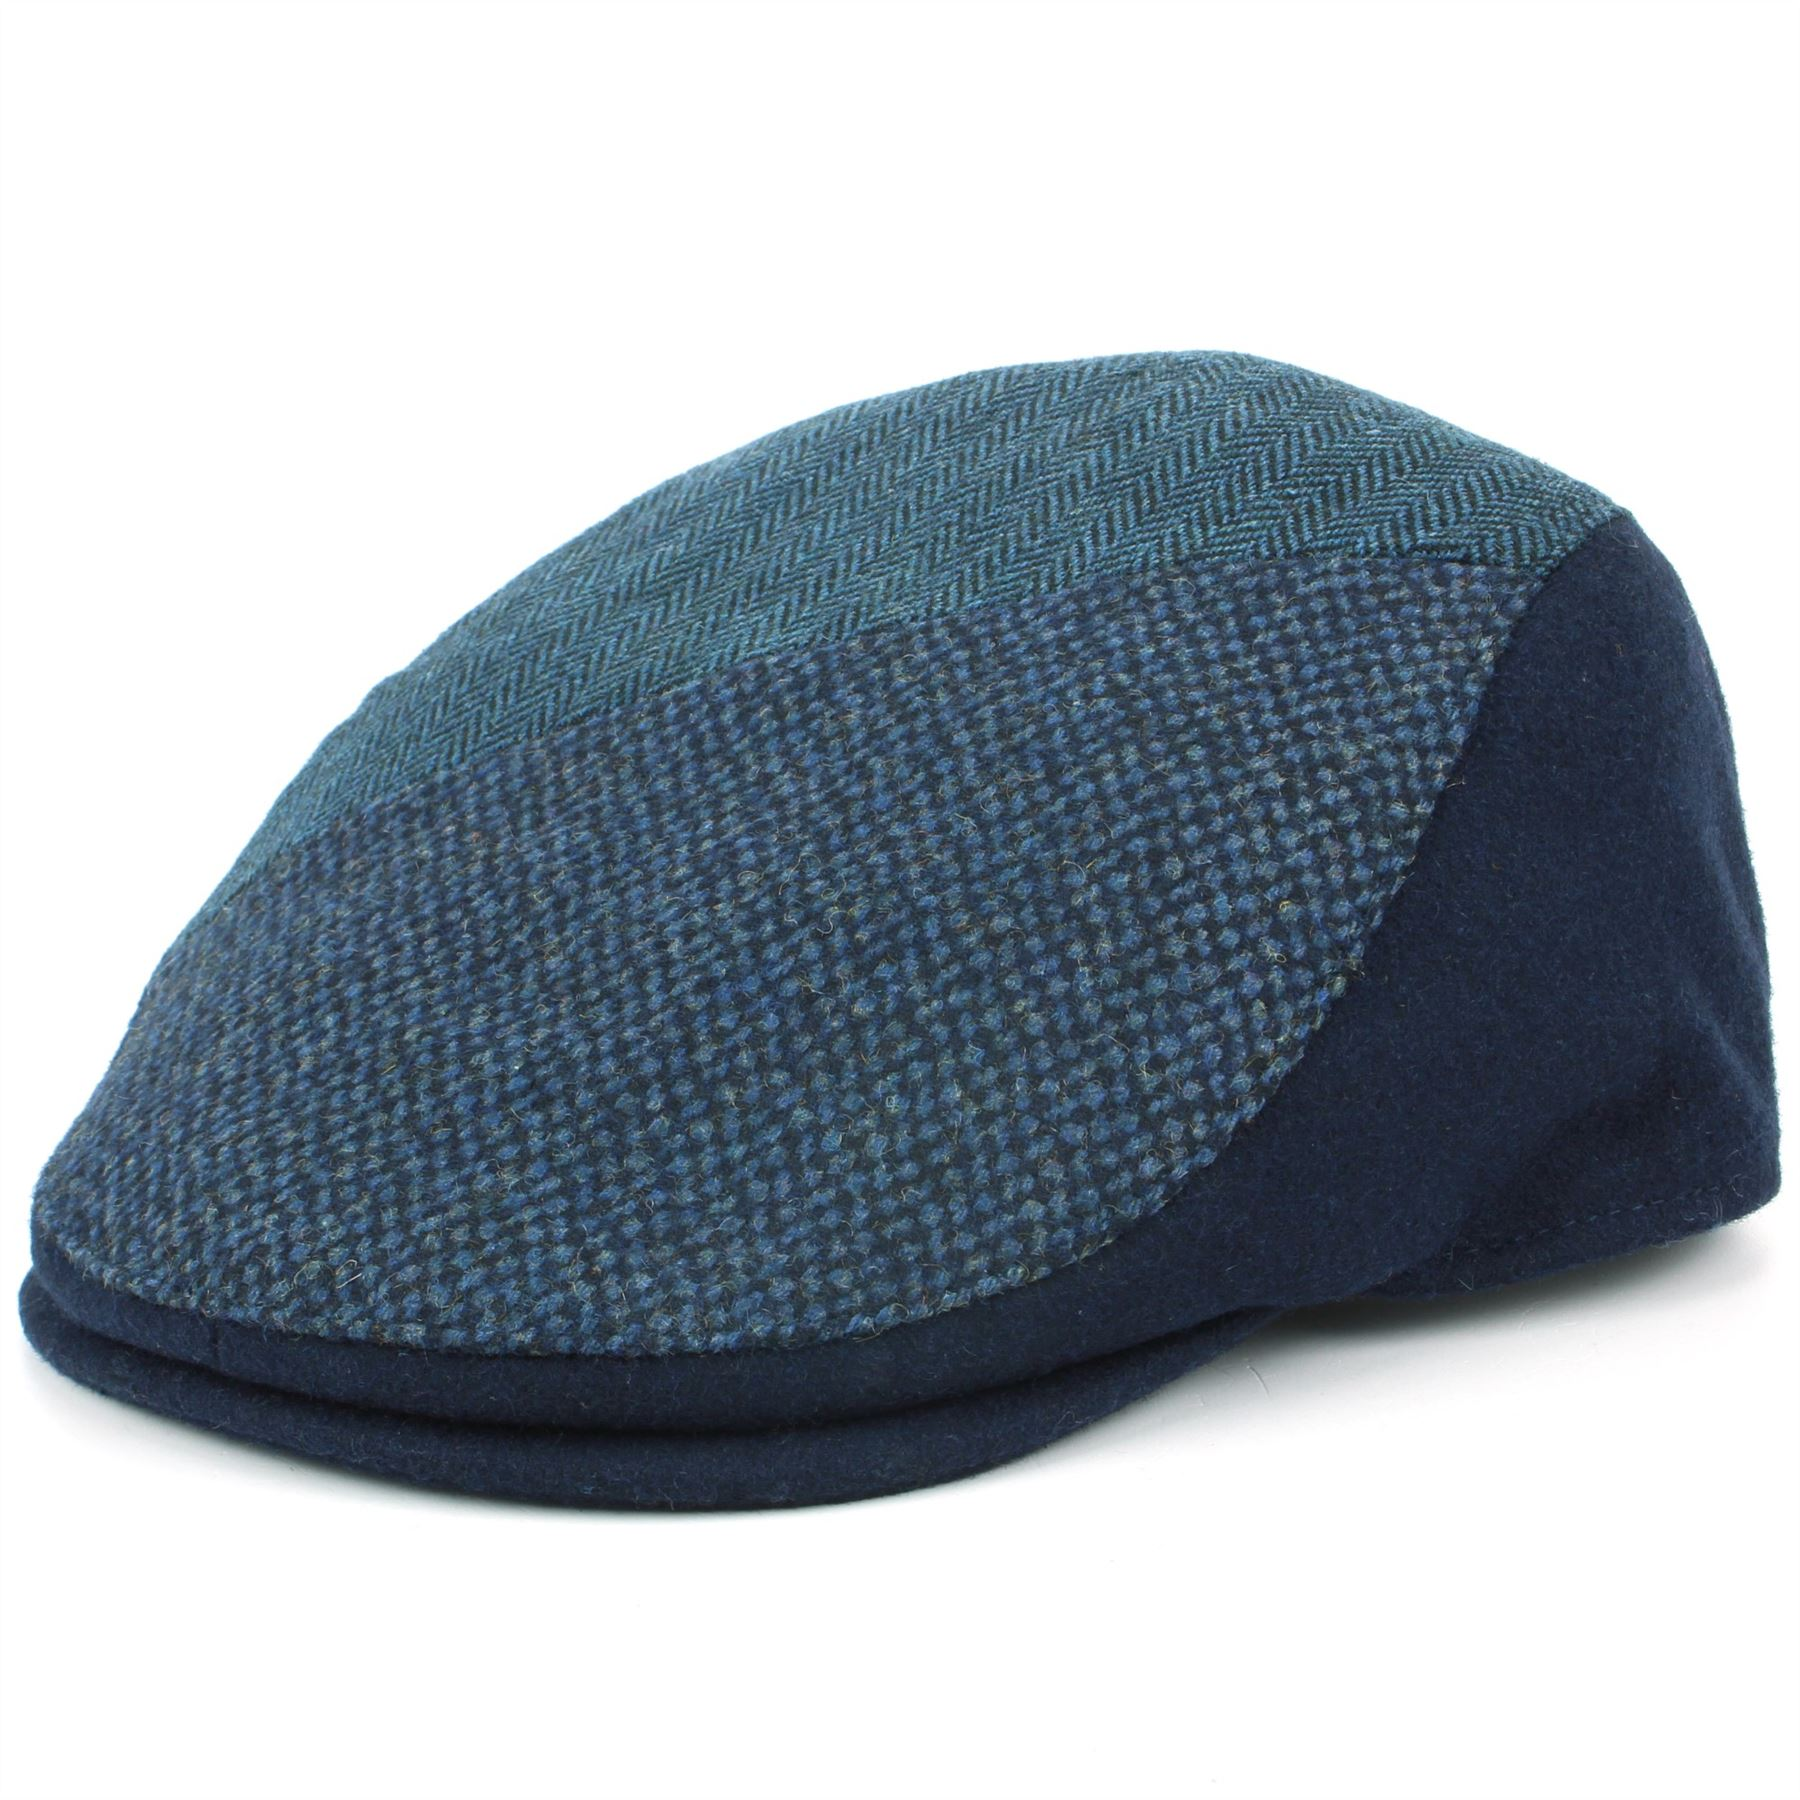 Tweed Flat Cap Hat BLUE GREEN Wool Hawkins Panel Fabric Patchwork ... d8105a859eb6